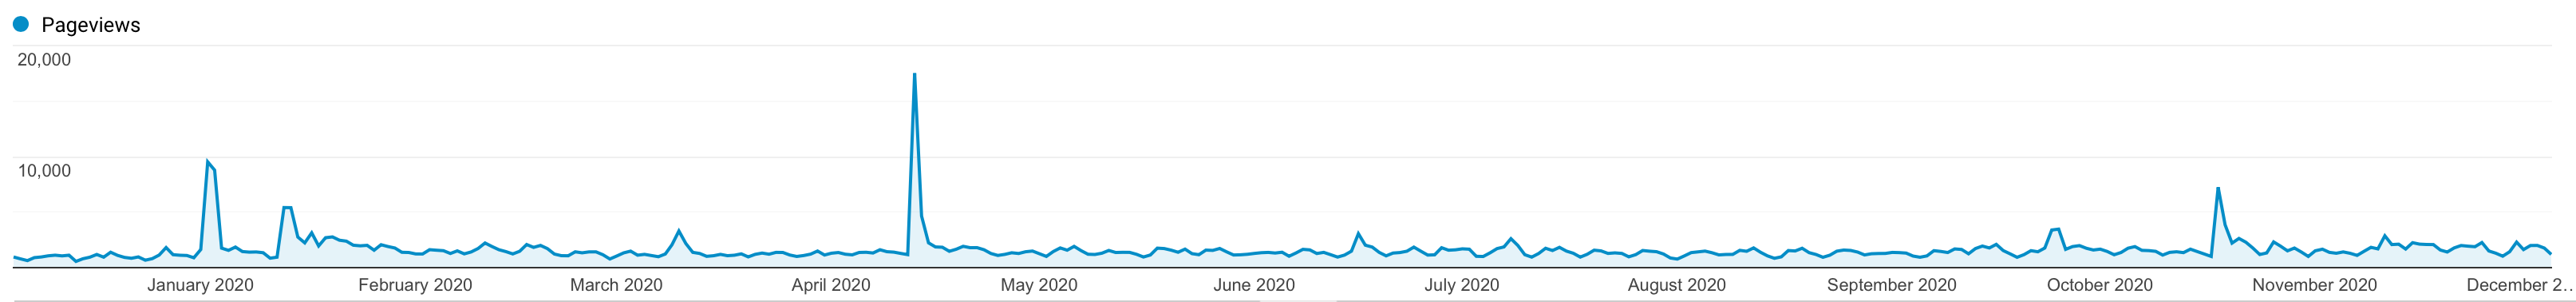 Daily pageviews for Irrational Exuberance.